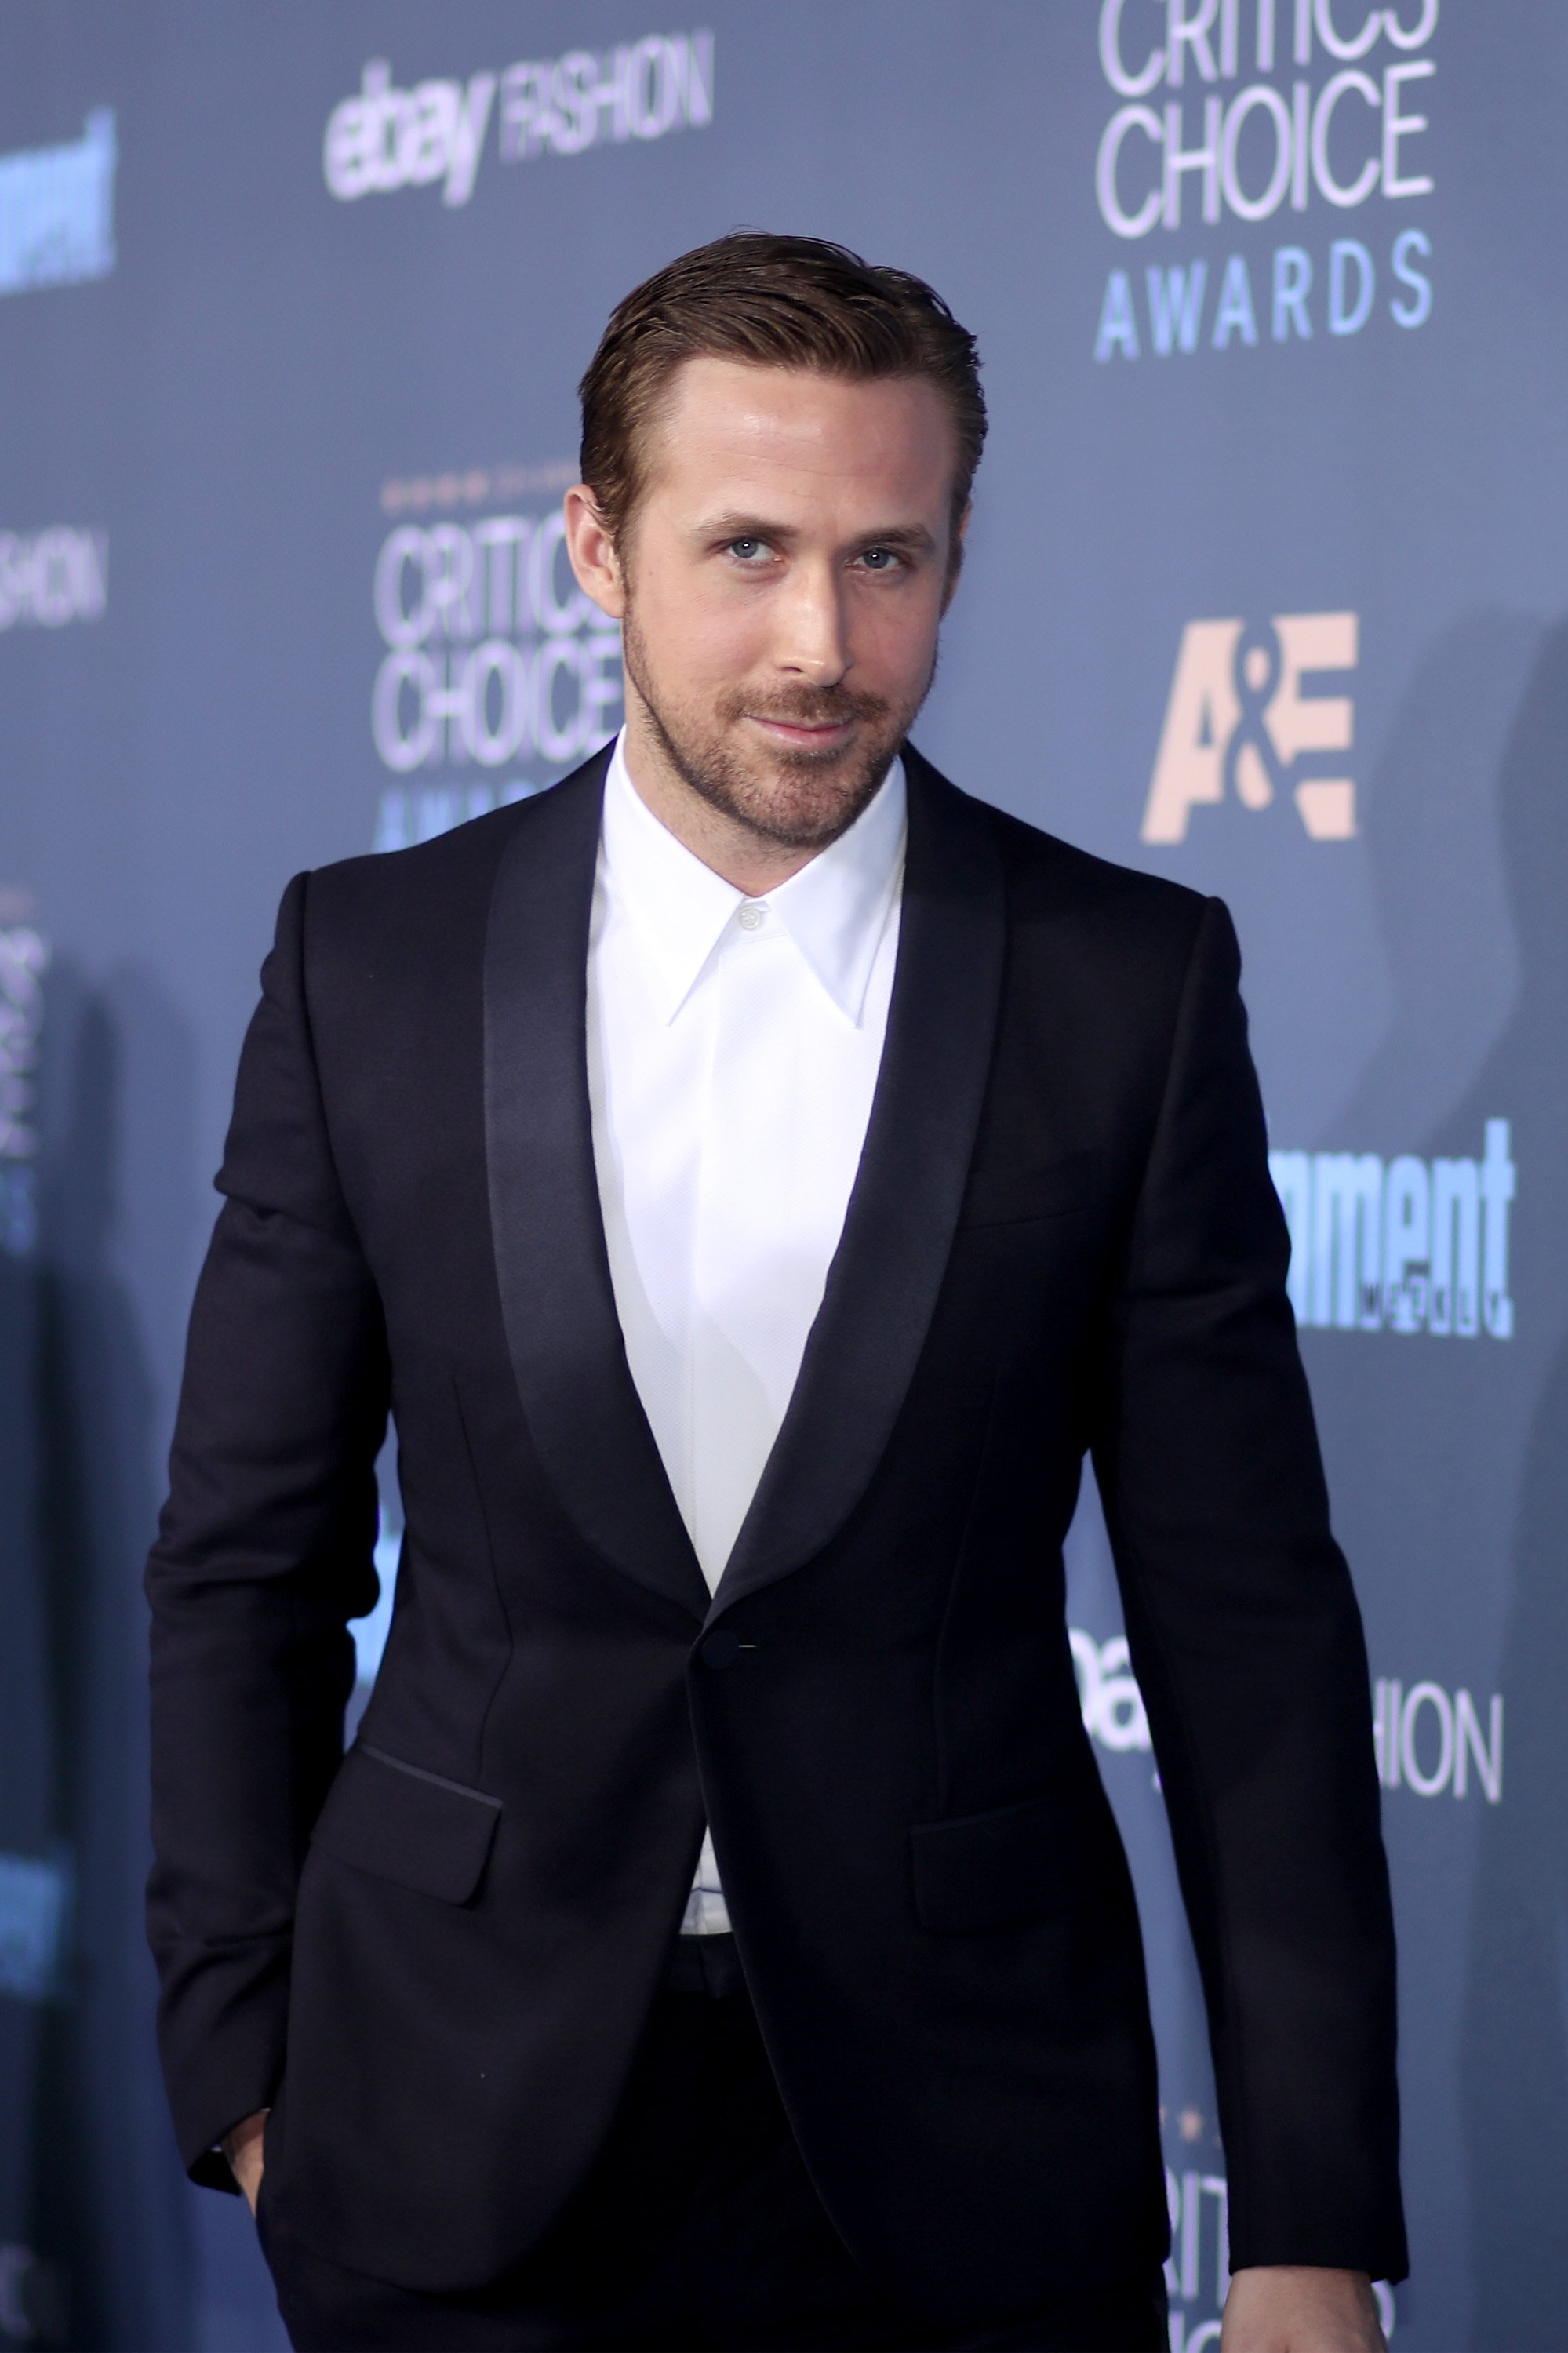 Ryan Gosling | Quelle: Getty Images